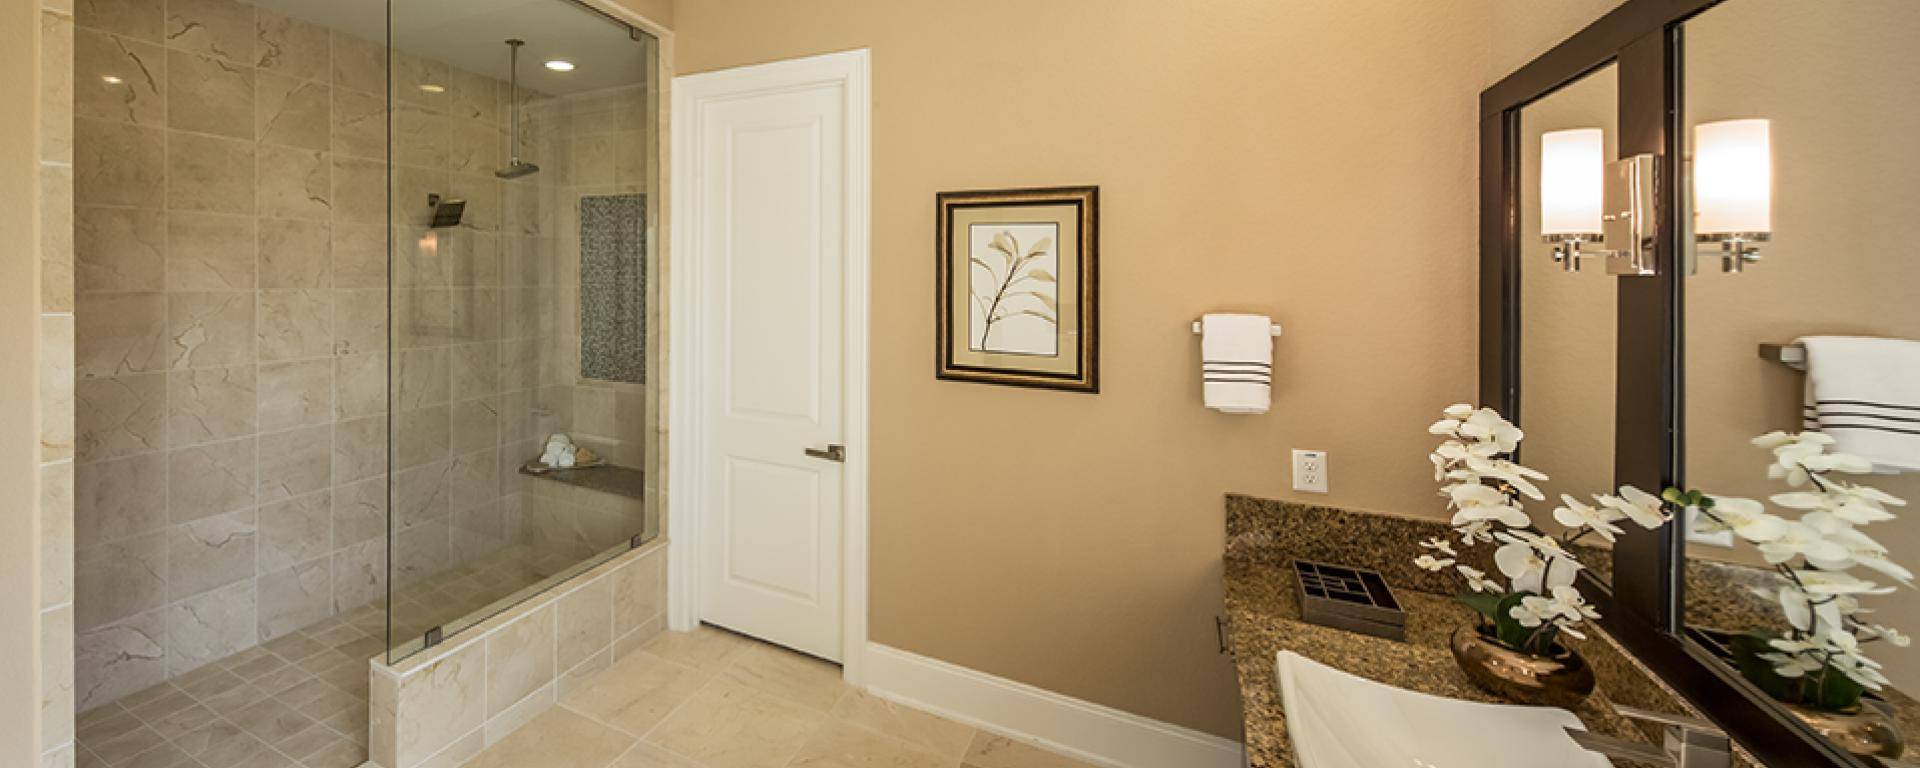 Bellagio new home plan for southern trails 85ft community for Bathroom interior design houston